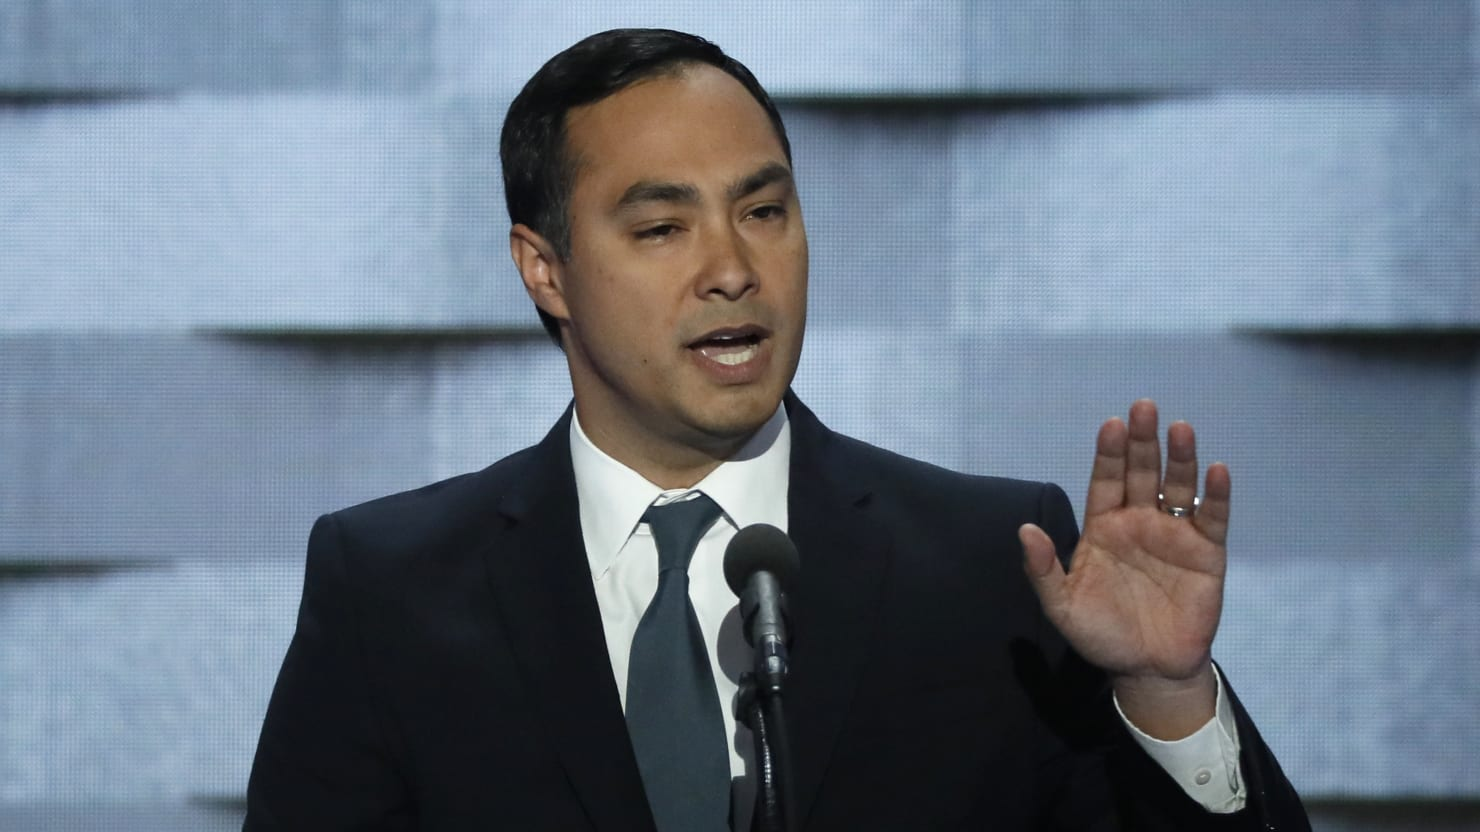 Trump Admin 'Covered Up' Death of 10-Year-Old Migrant Girl, Says Rep. Joaquin Castro